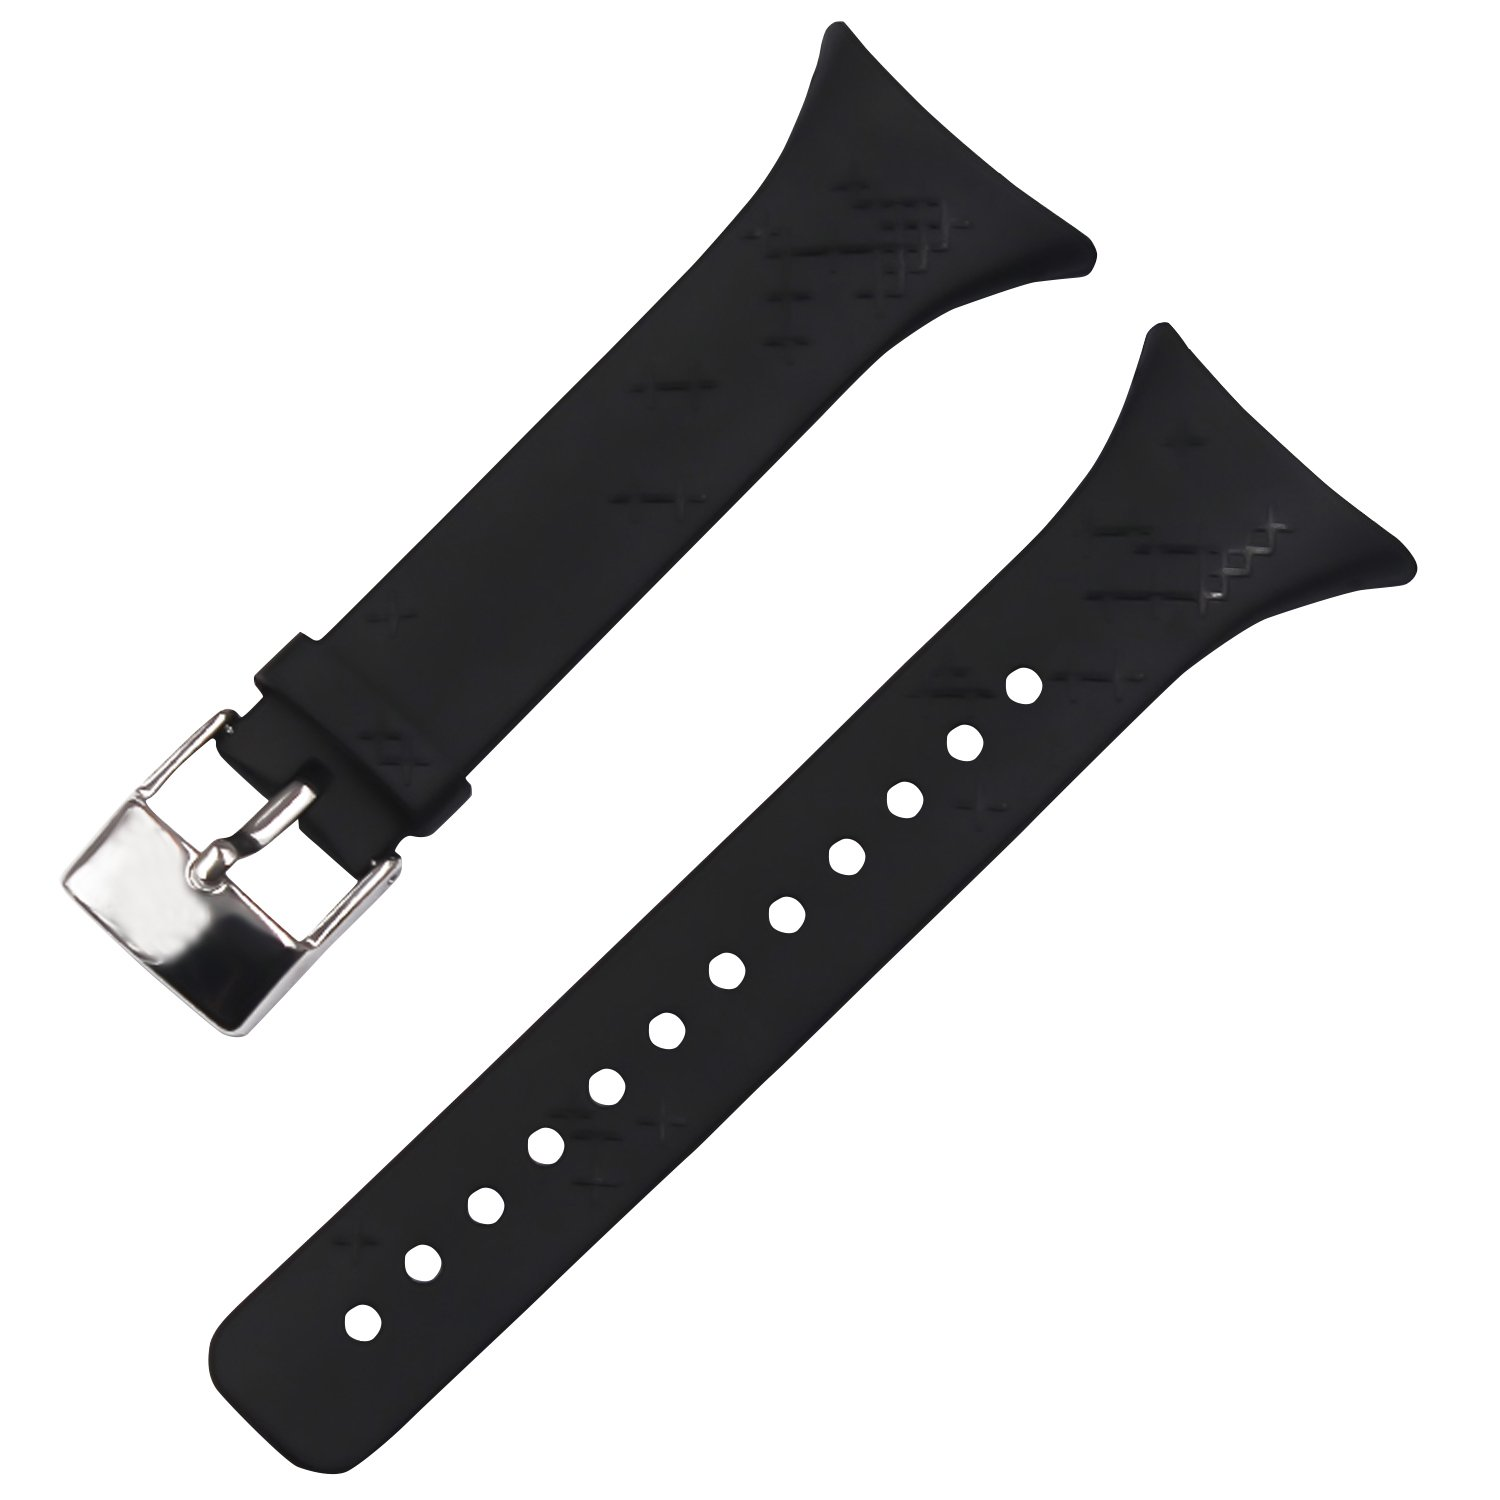 Rubber Watch Band Replacement Suunto M-Series M1 M2 M4 M5 Watch Strap